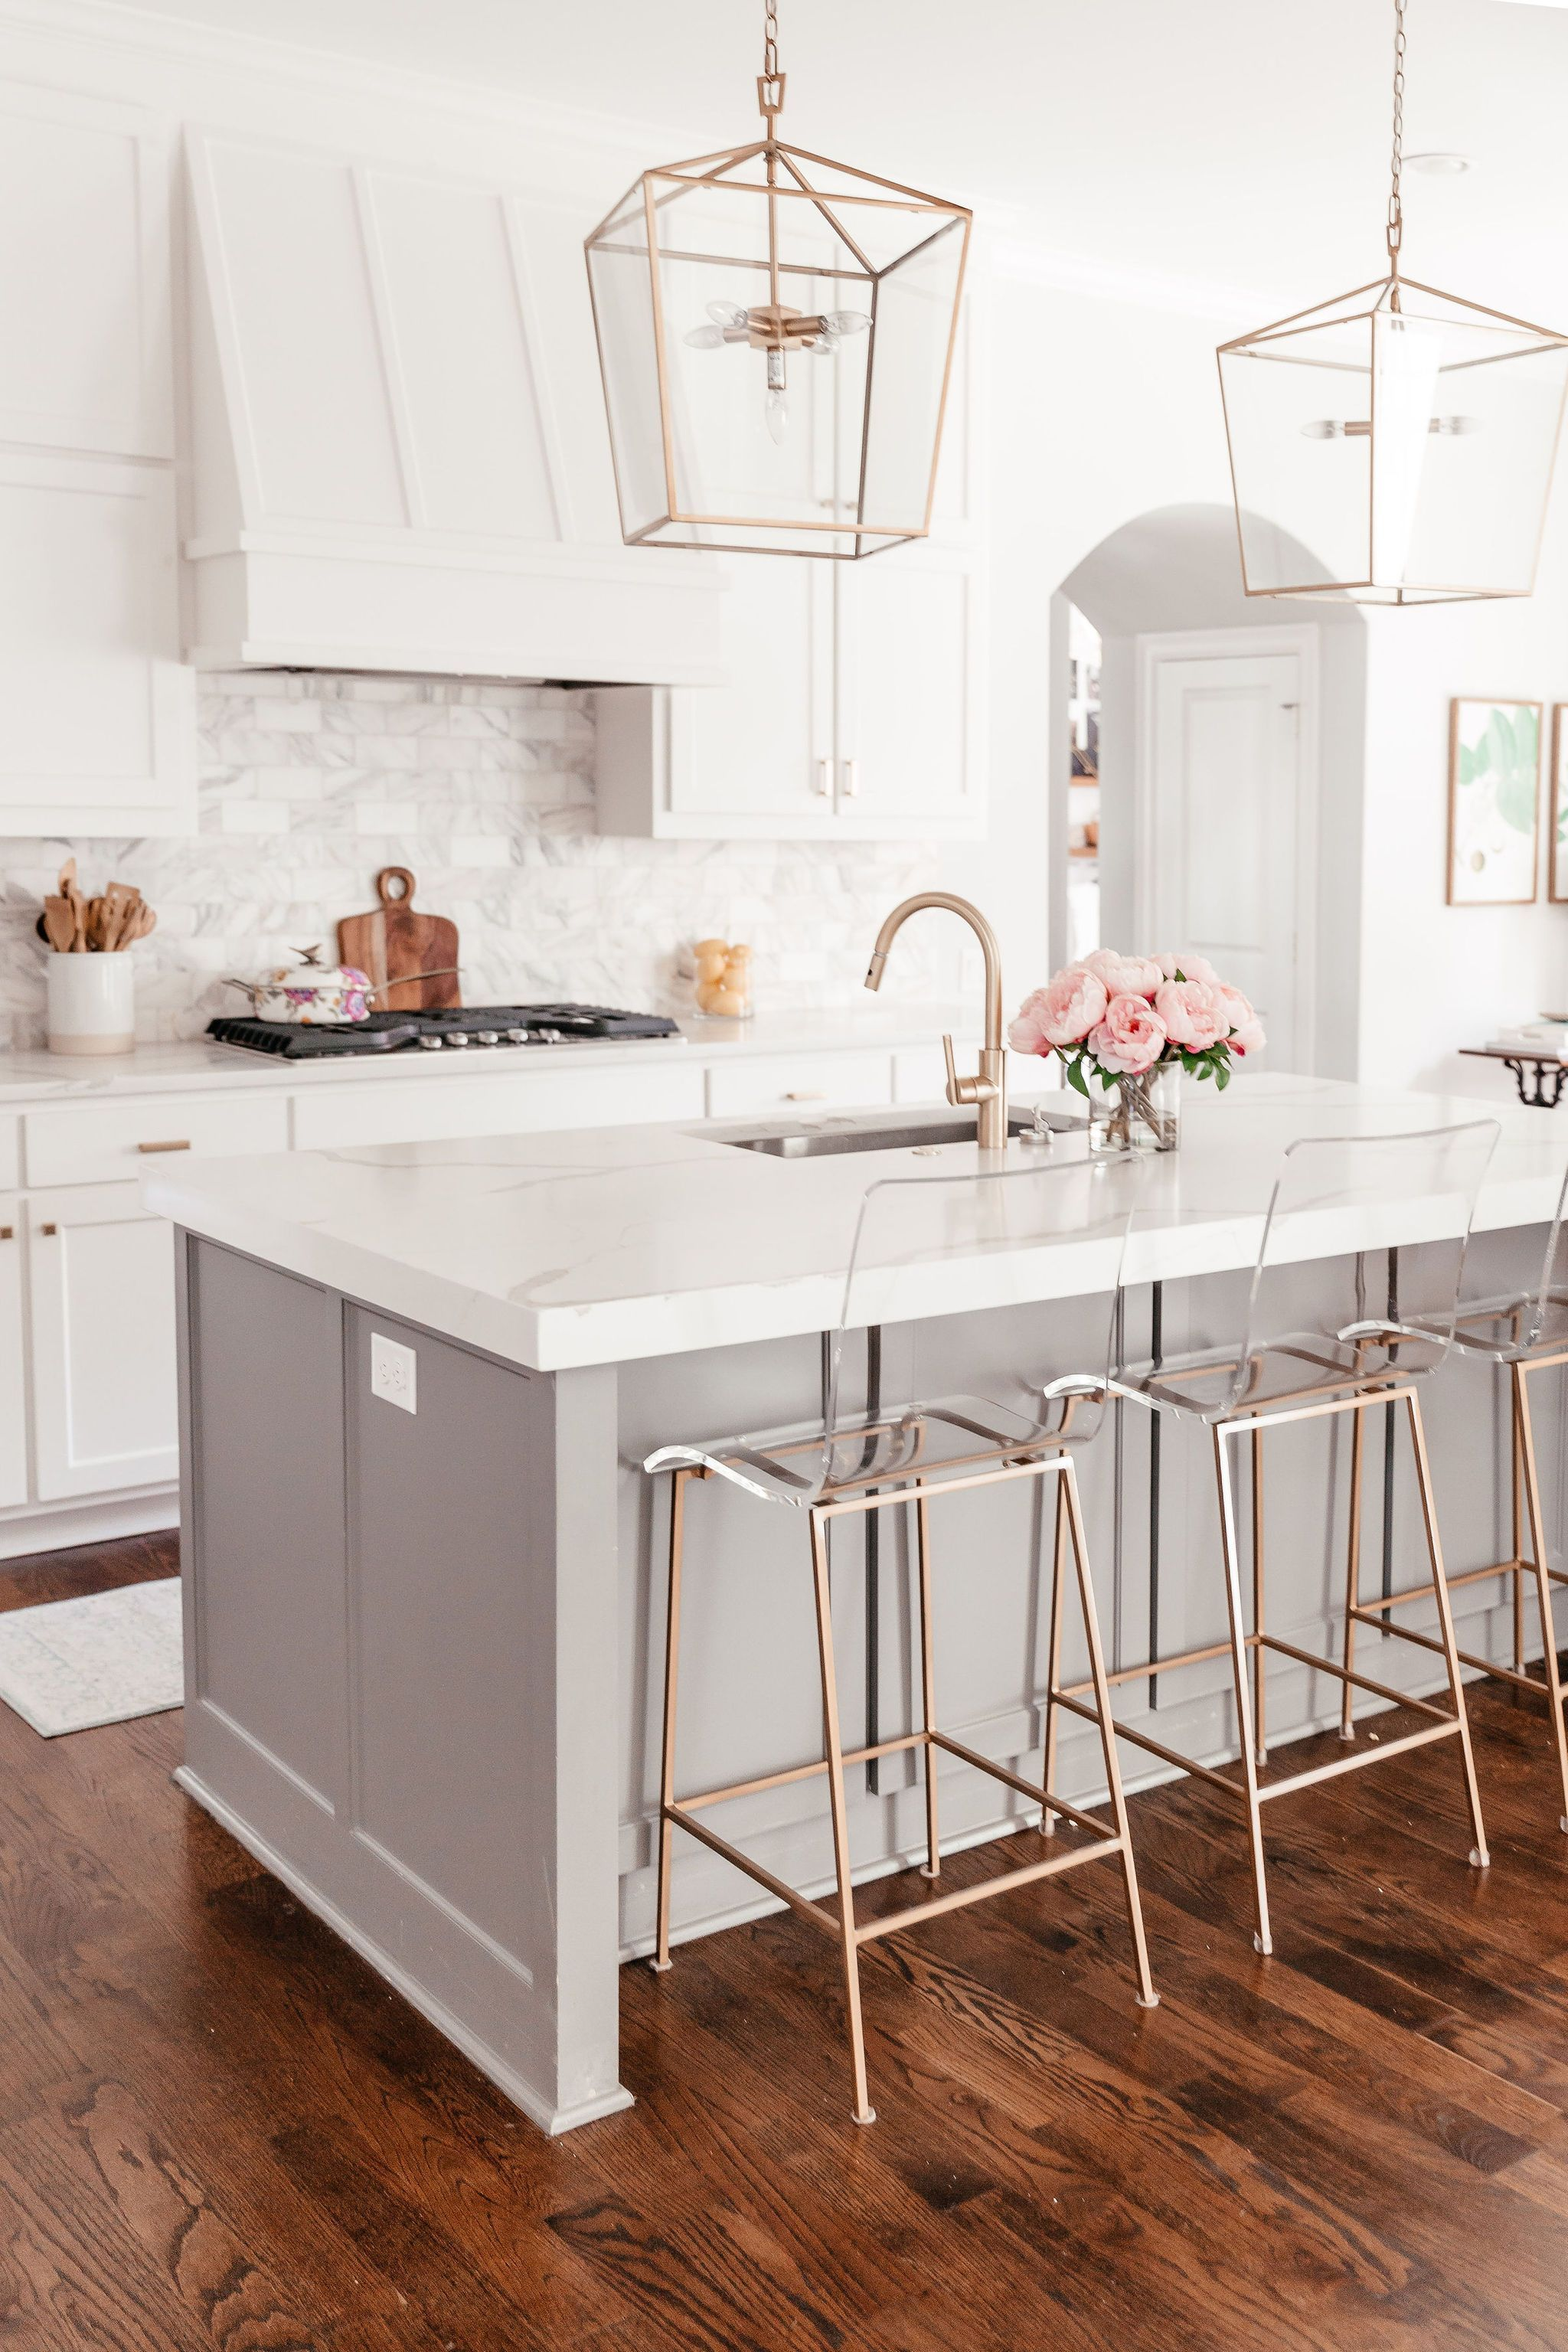 All About My Dallas Home Acrylic Bar Stools Kitchen Design Home Decor Kitchen